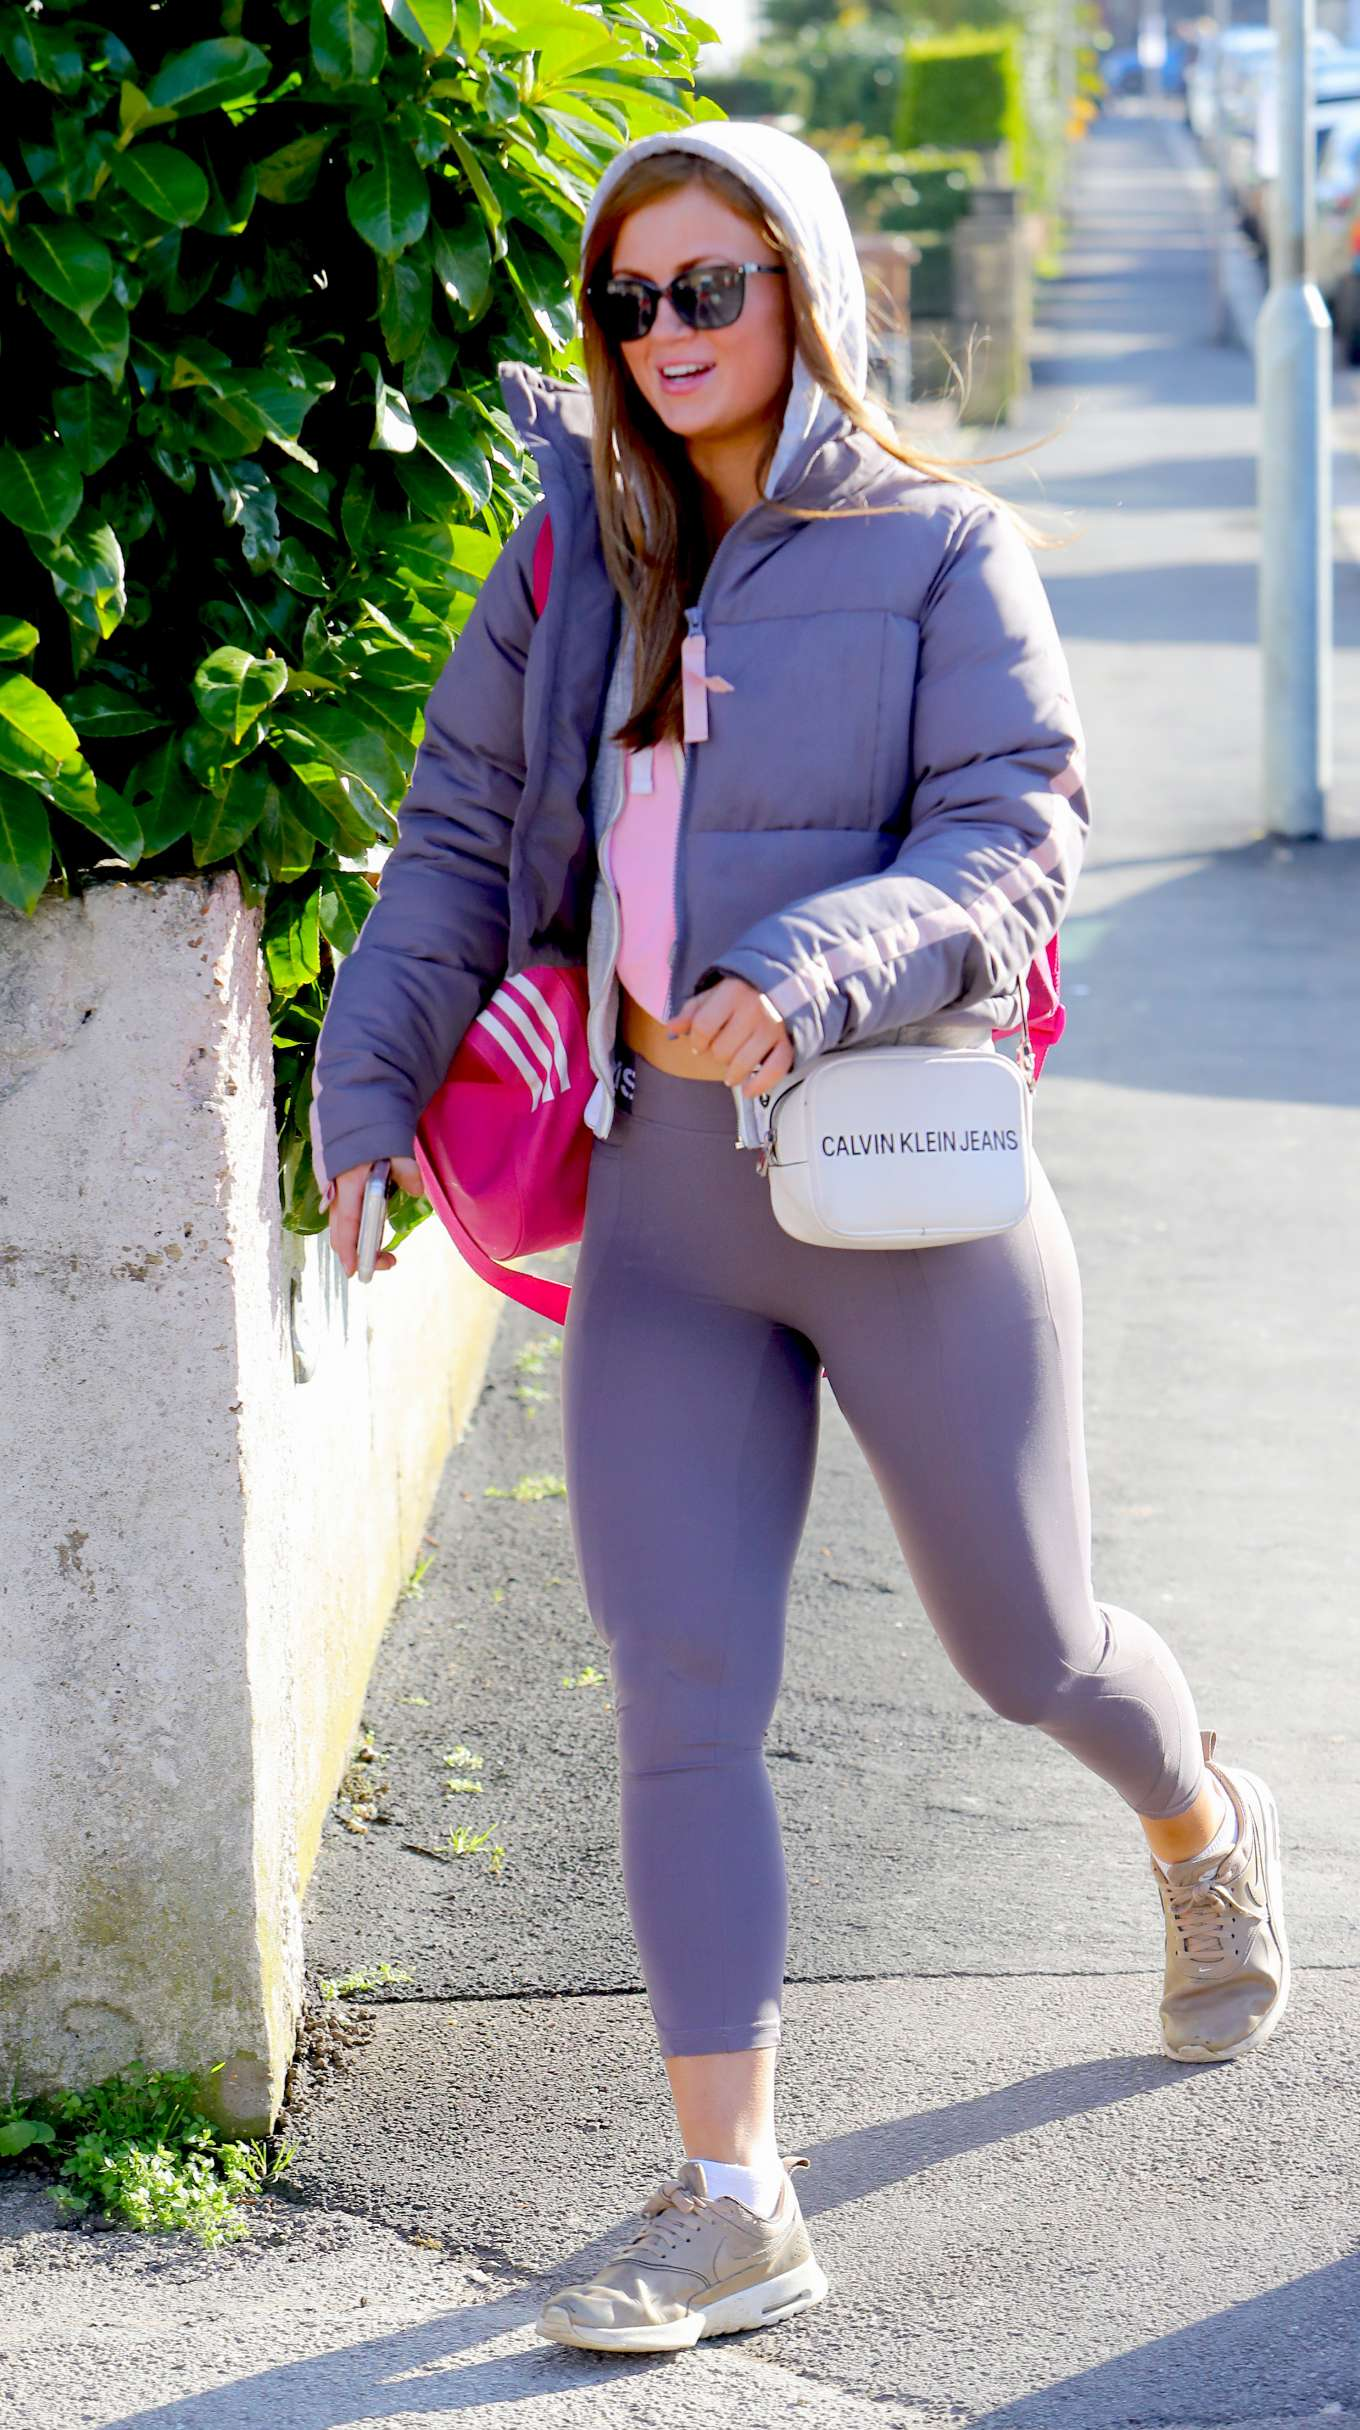 Maisie Smith spotted with her gym bag and Dr Who keyring in London